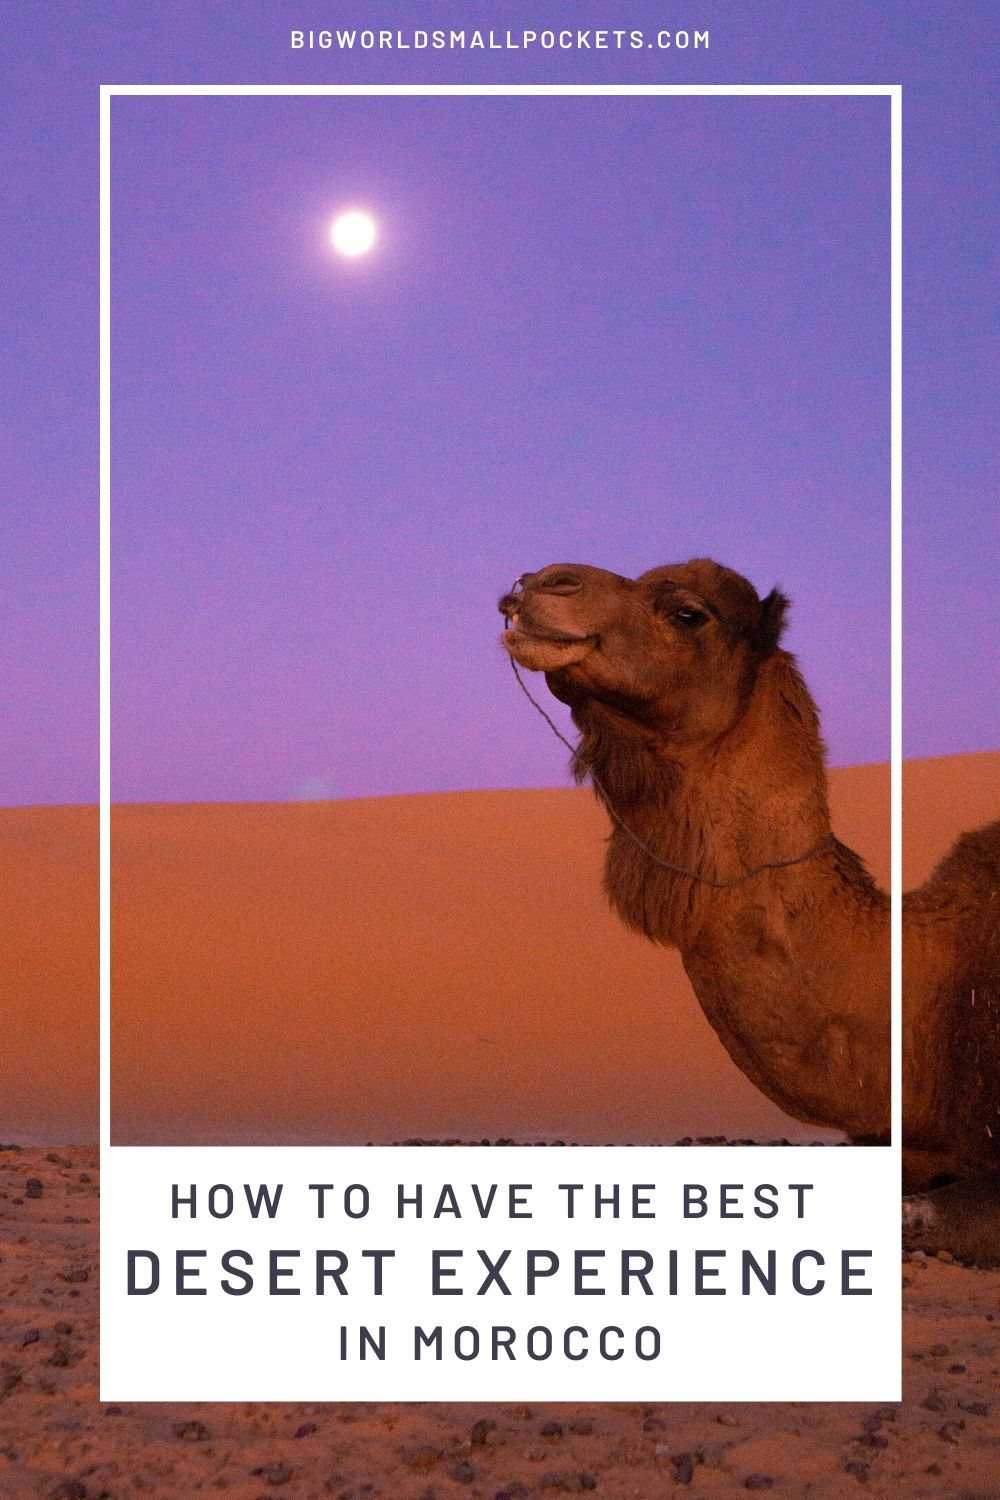 Crucial Tips For Getting The Best Desert Experience in Morocco